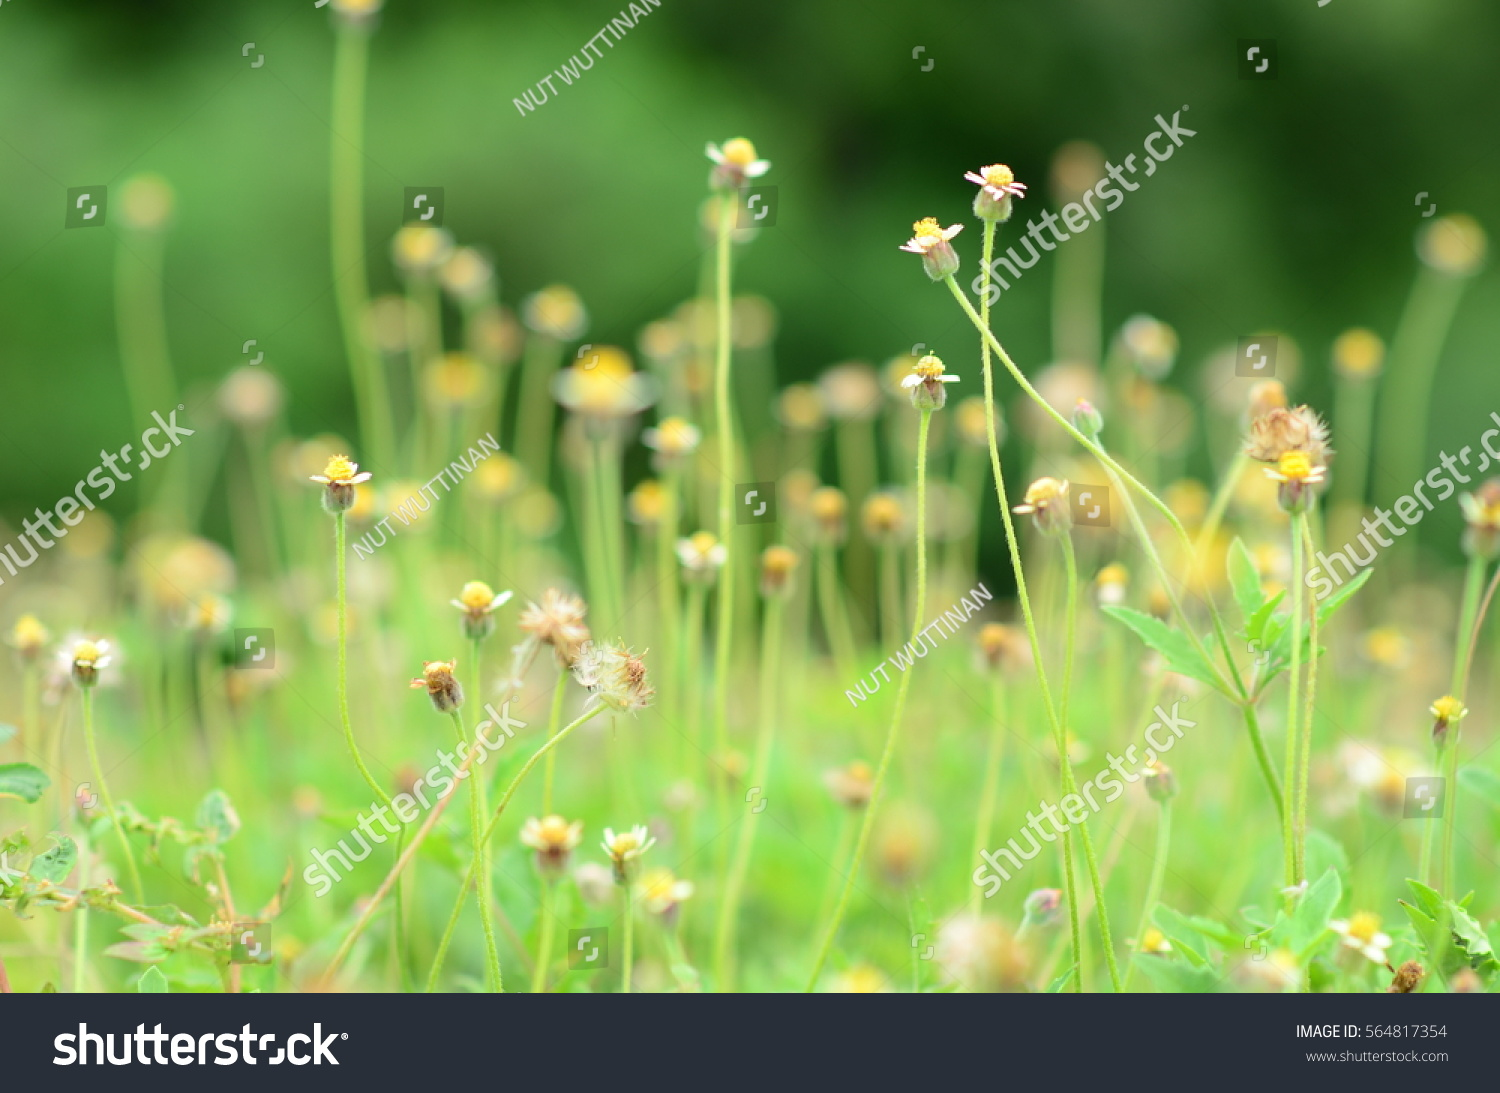 Grass Yellow Flowers And With White Petals And Blurred Background